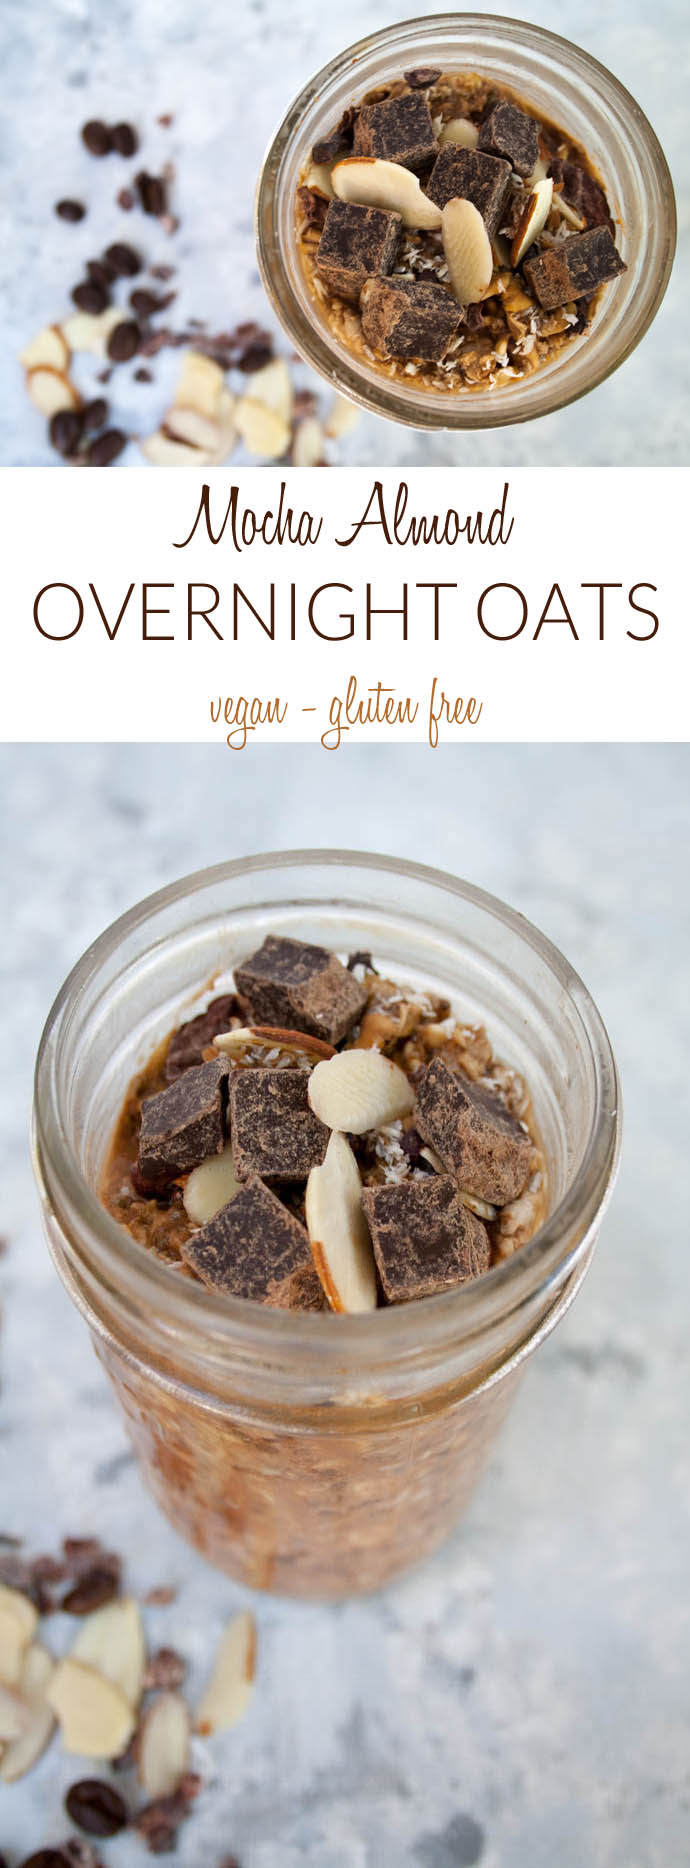 Mocha Almond Overnight Oats collage photo